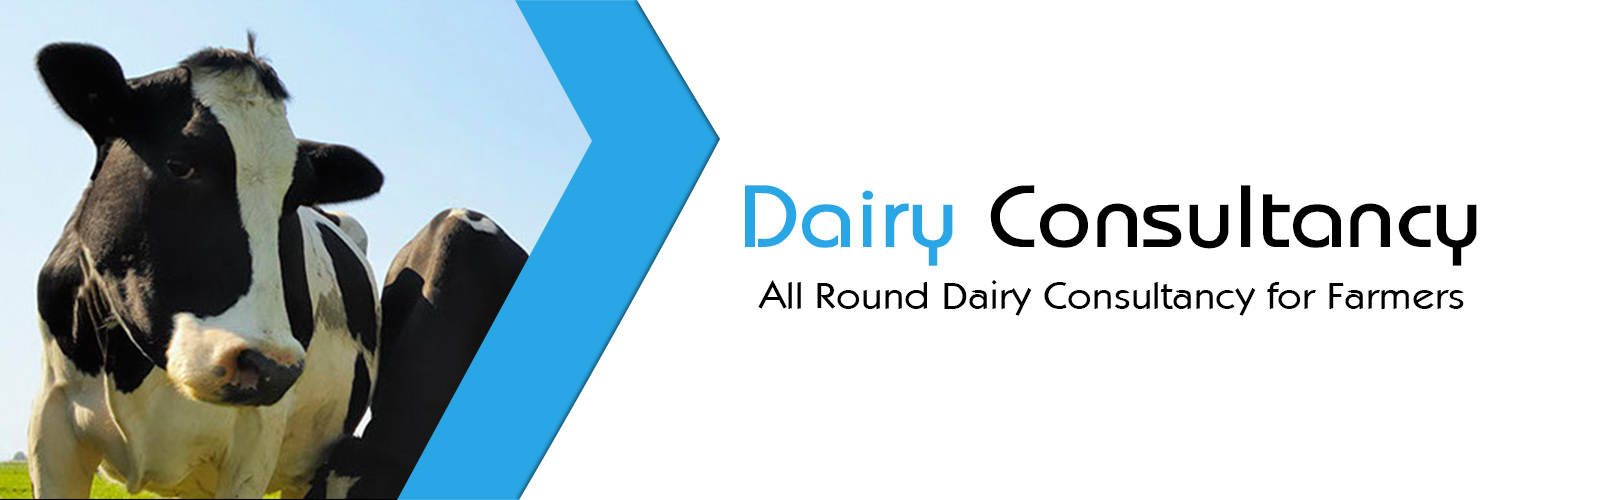 Dairy Consultancy